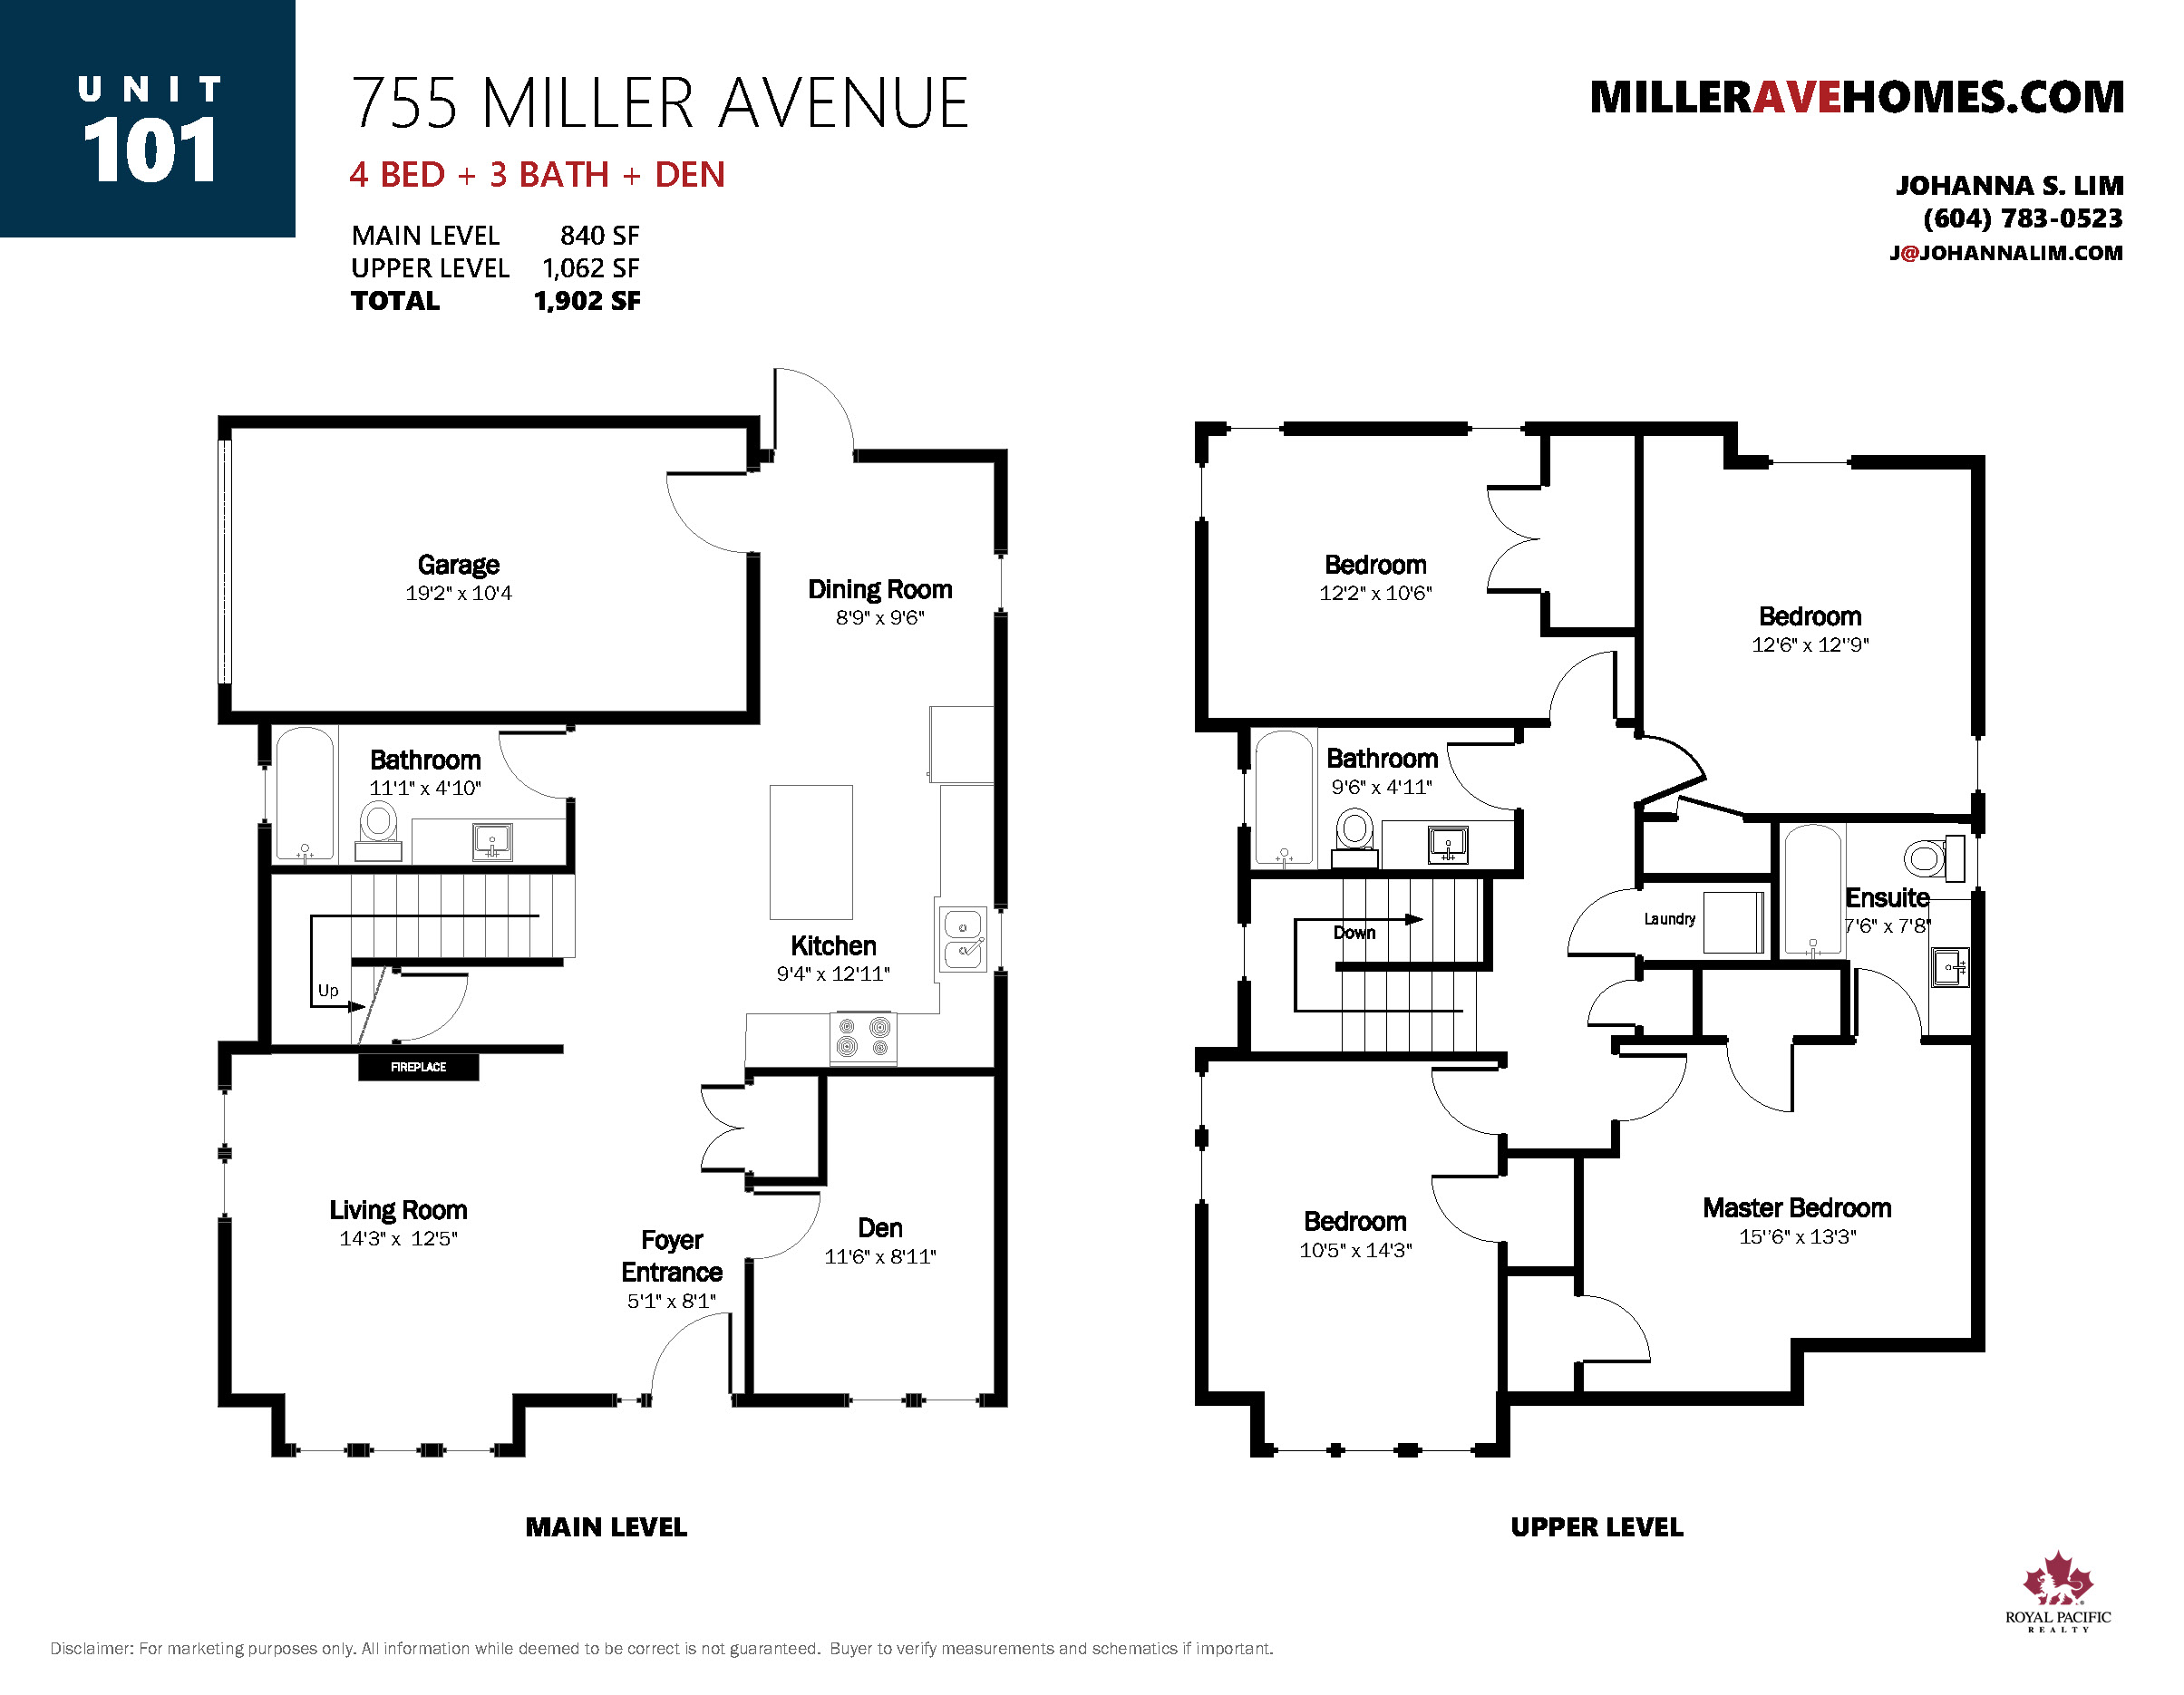 new homes for sale 755 miller avenue coquitlam bc see more info for unit 101